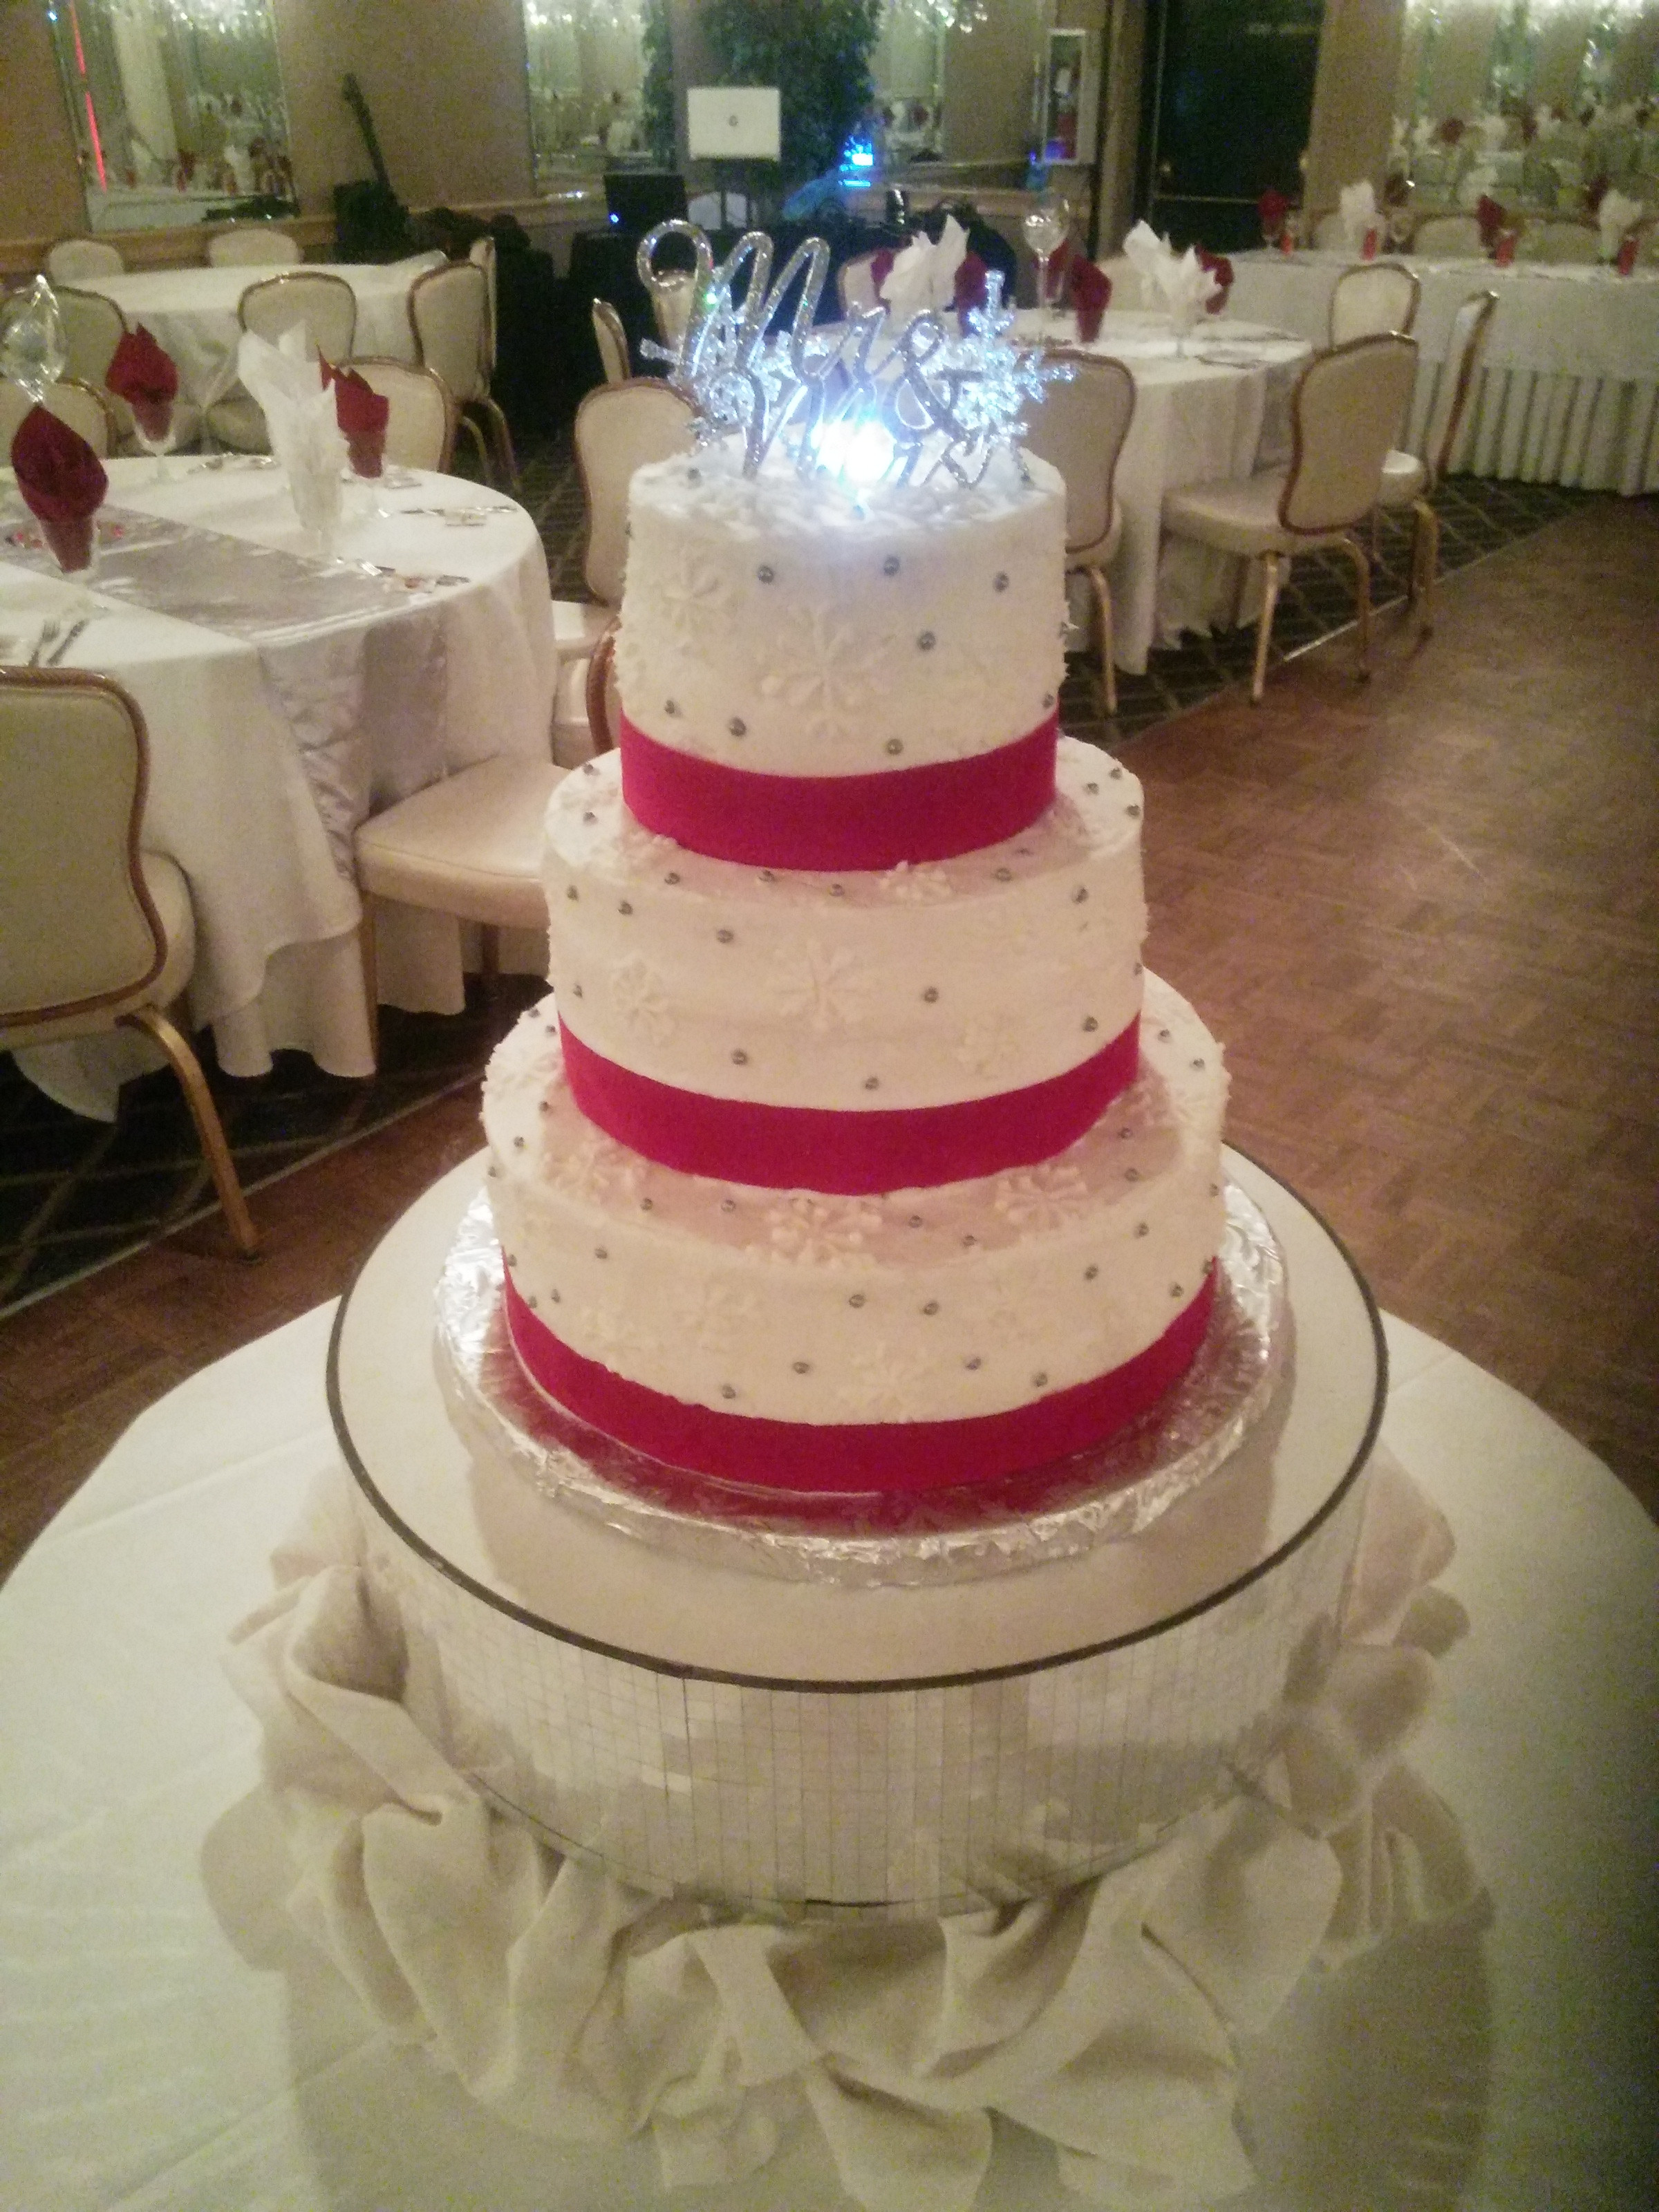 Wedding Cakes Cleveland Ohio  s Custom Wedding Cakes and Designer Specialty Cakes